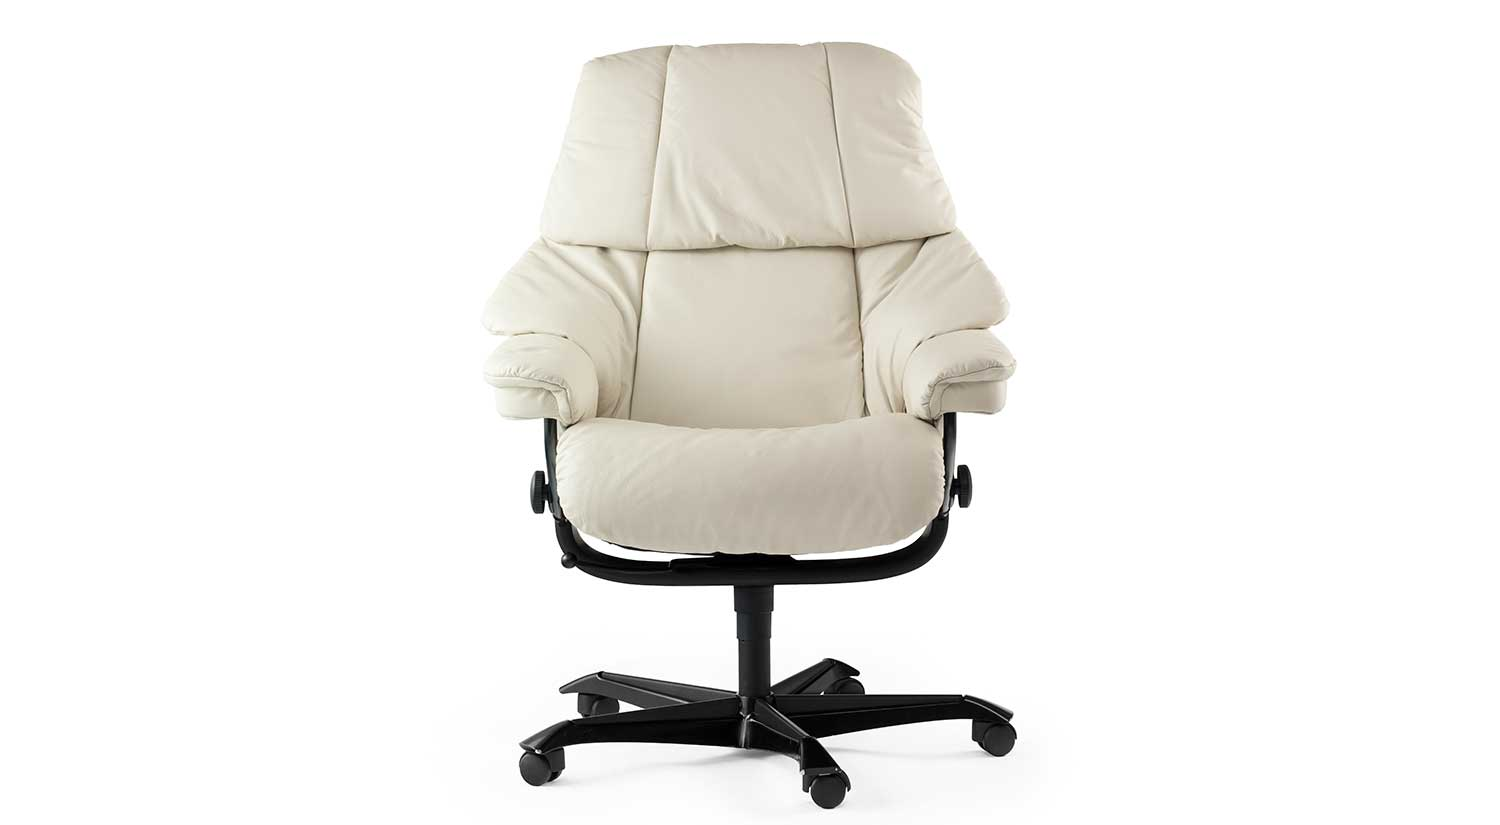 Reno Stressless Office Chair